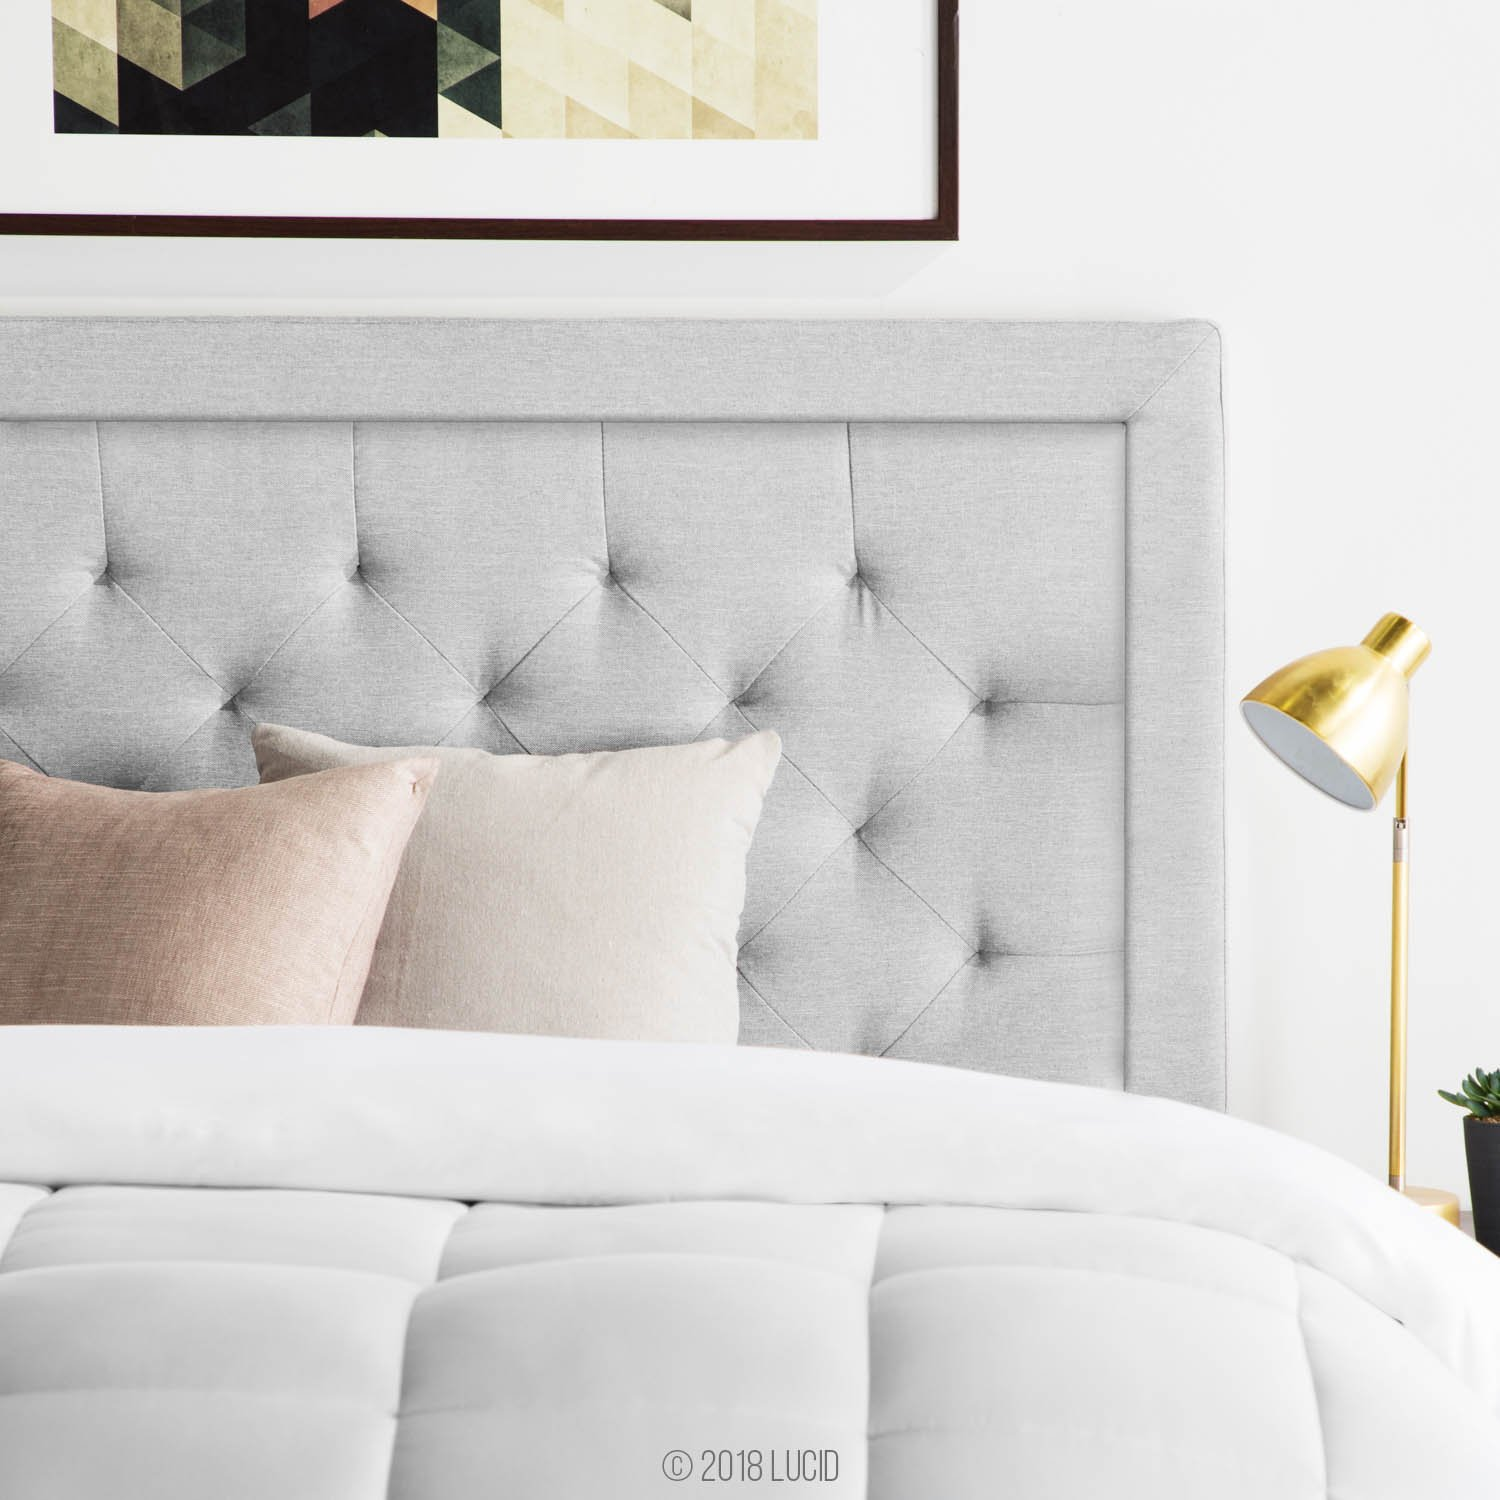 LUCID LUQQREDTSTHB Bordered Upholstered Headboard with Diamond Tufting, Queen, Stone